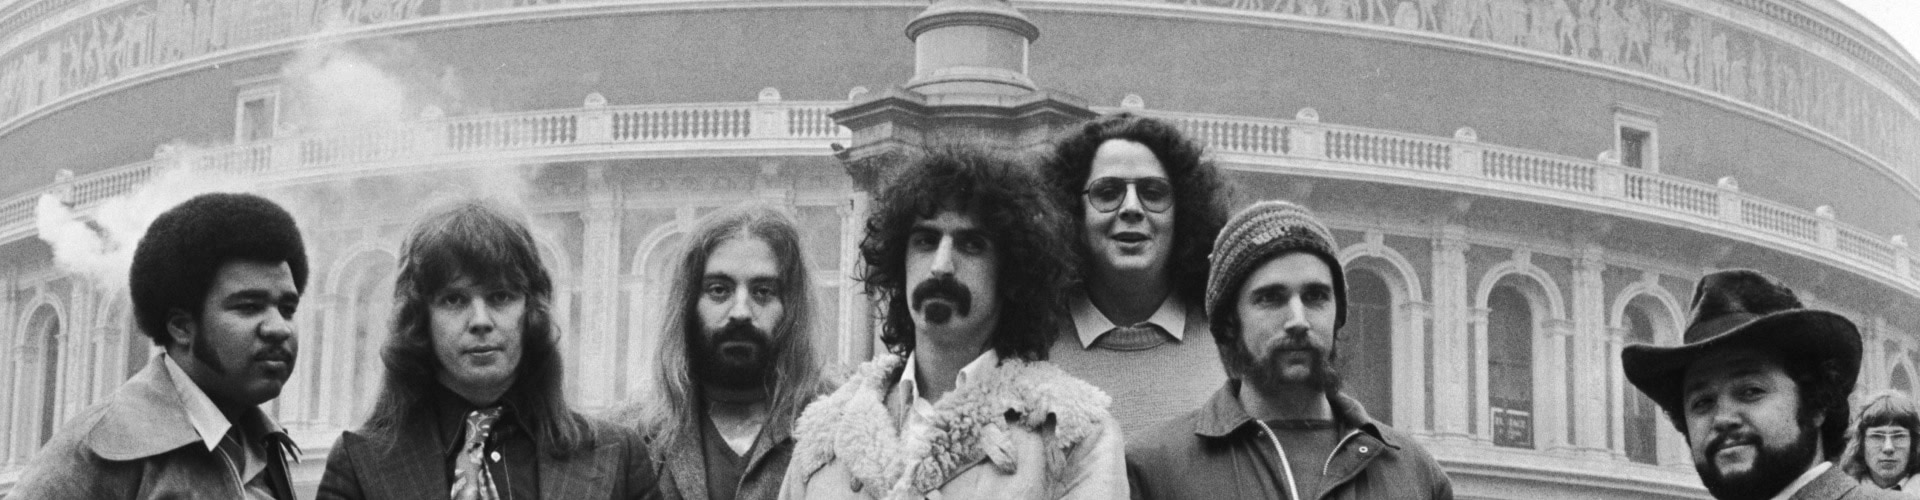 Watch Frank Zappa & The Mothers:... Online